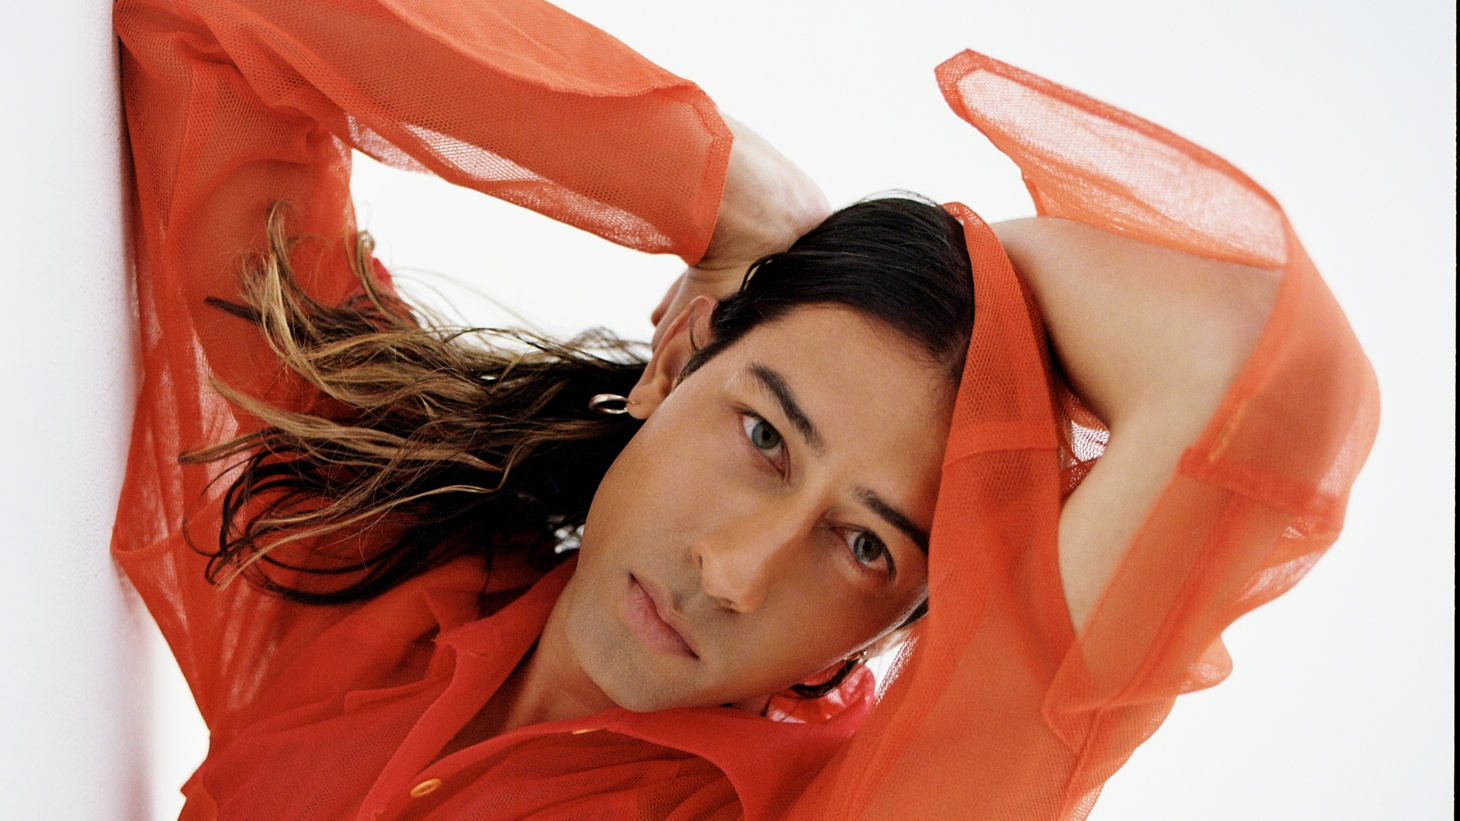 """""""Cry Everything"""" is the first song from Kindness in 5 years and it has a lot going for it. First, longtime collaborator (and friend), Robyn co-wrote and supplies her nimble vocals. Second, you can spot a Todd Rundgren sample."""